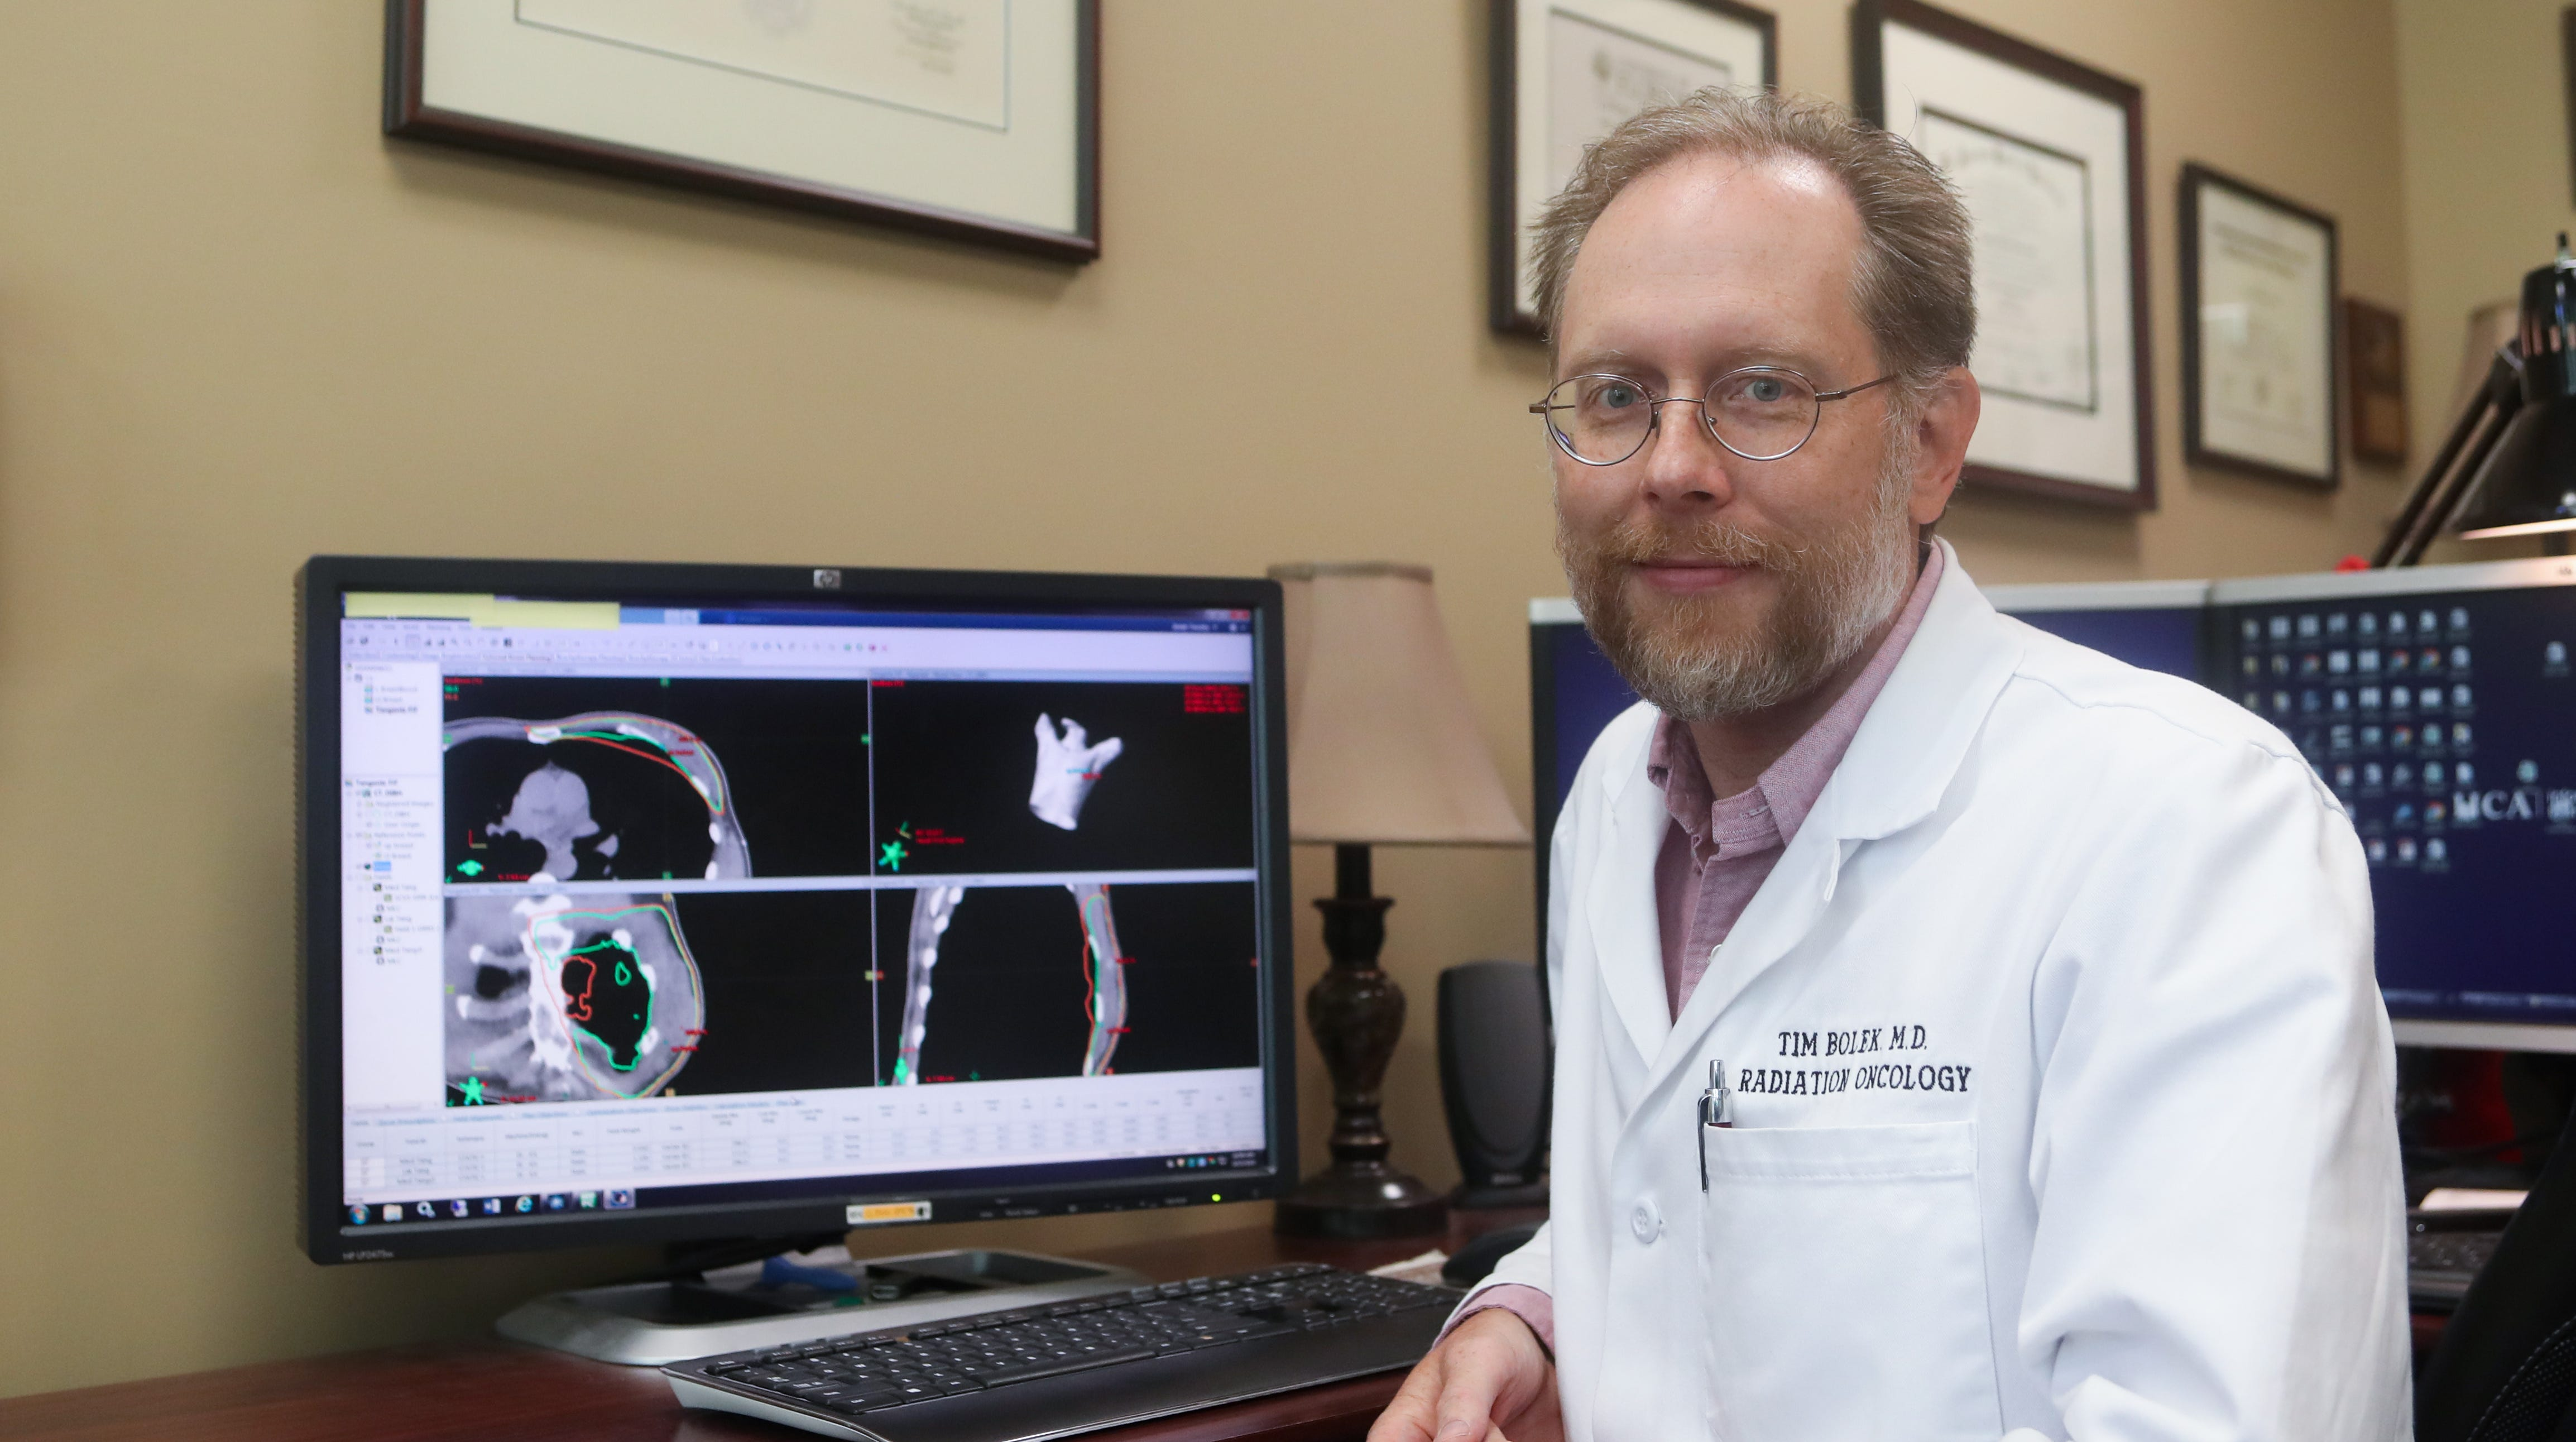 Breast cancer treatment pairs technology with trust